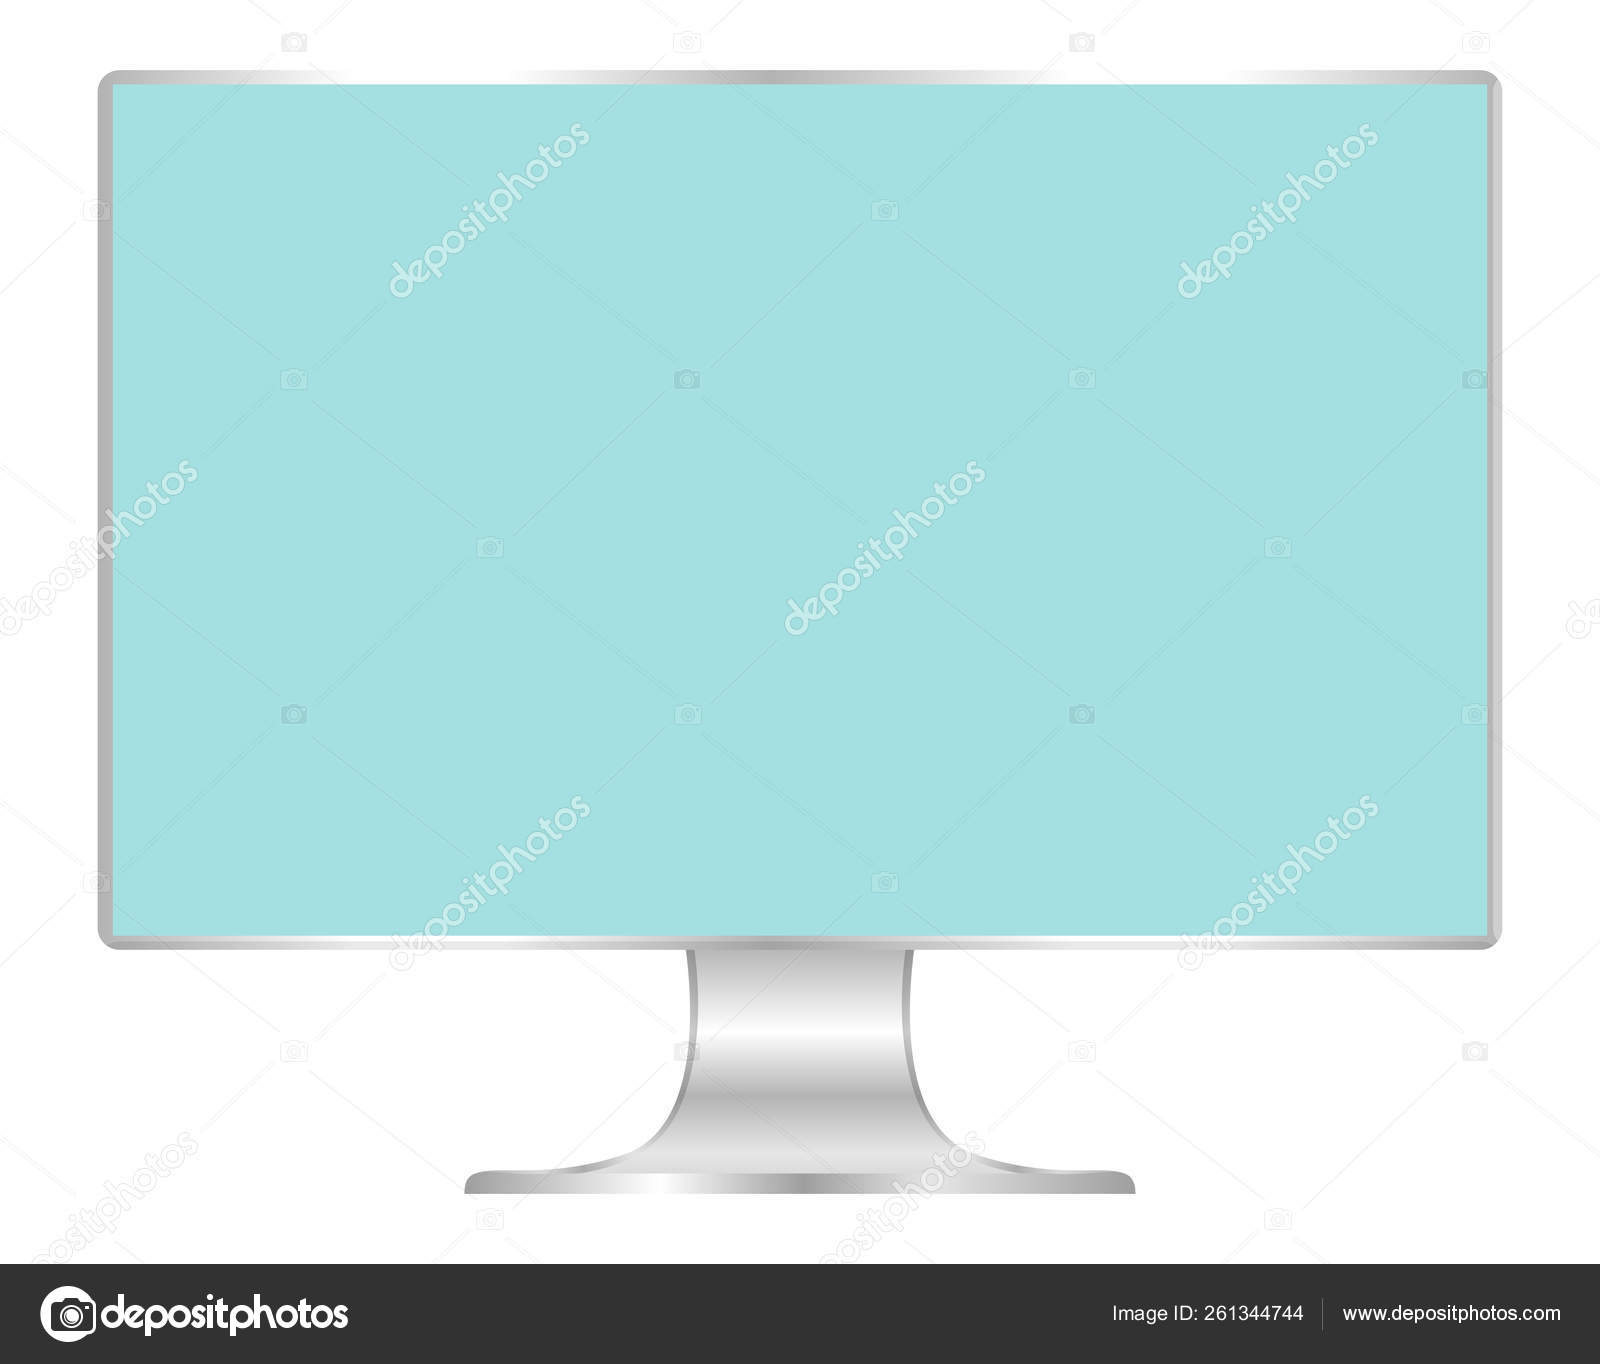 Front Flat Monitor Light Blue Screen Computer Display